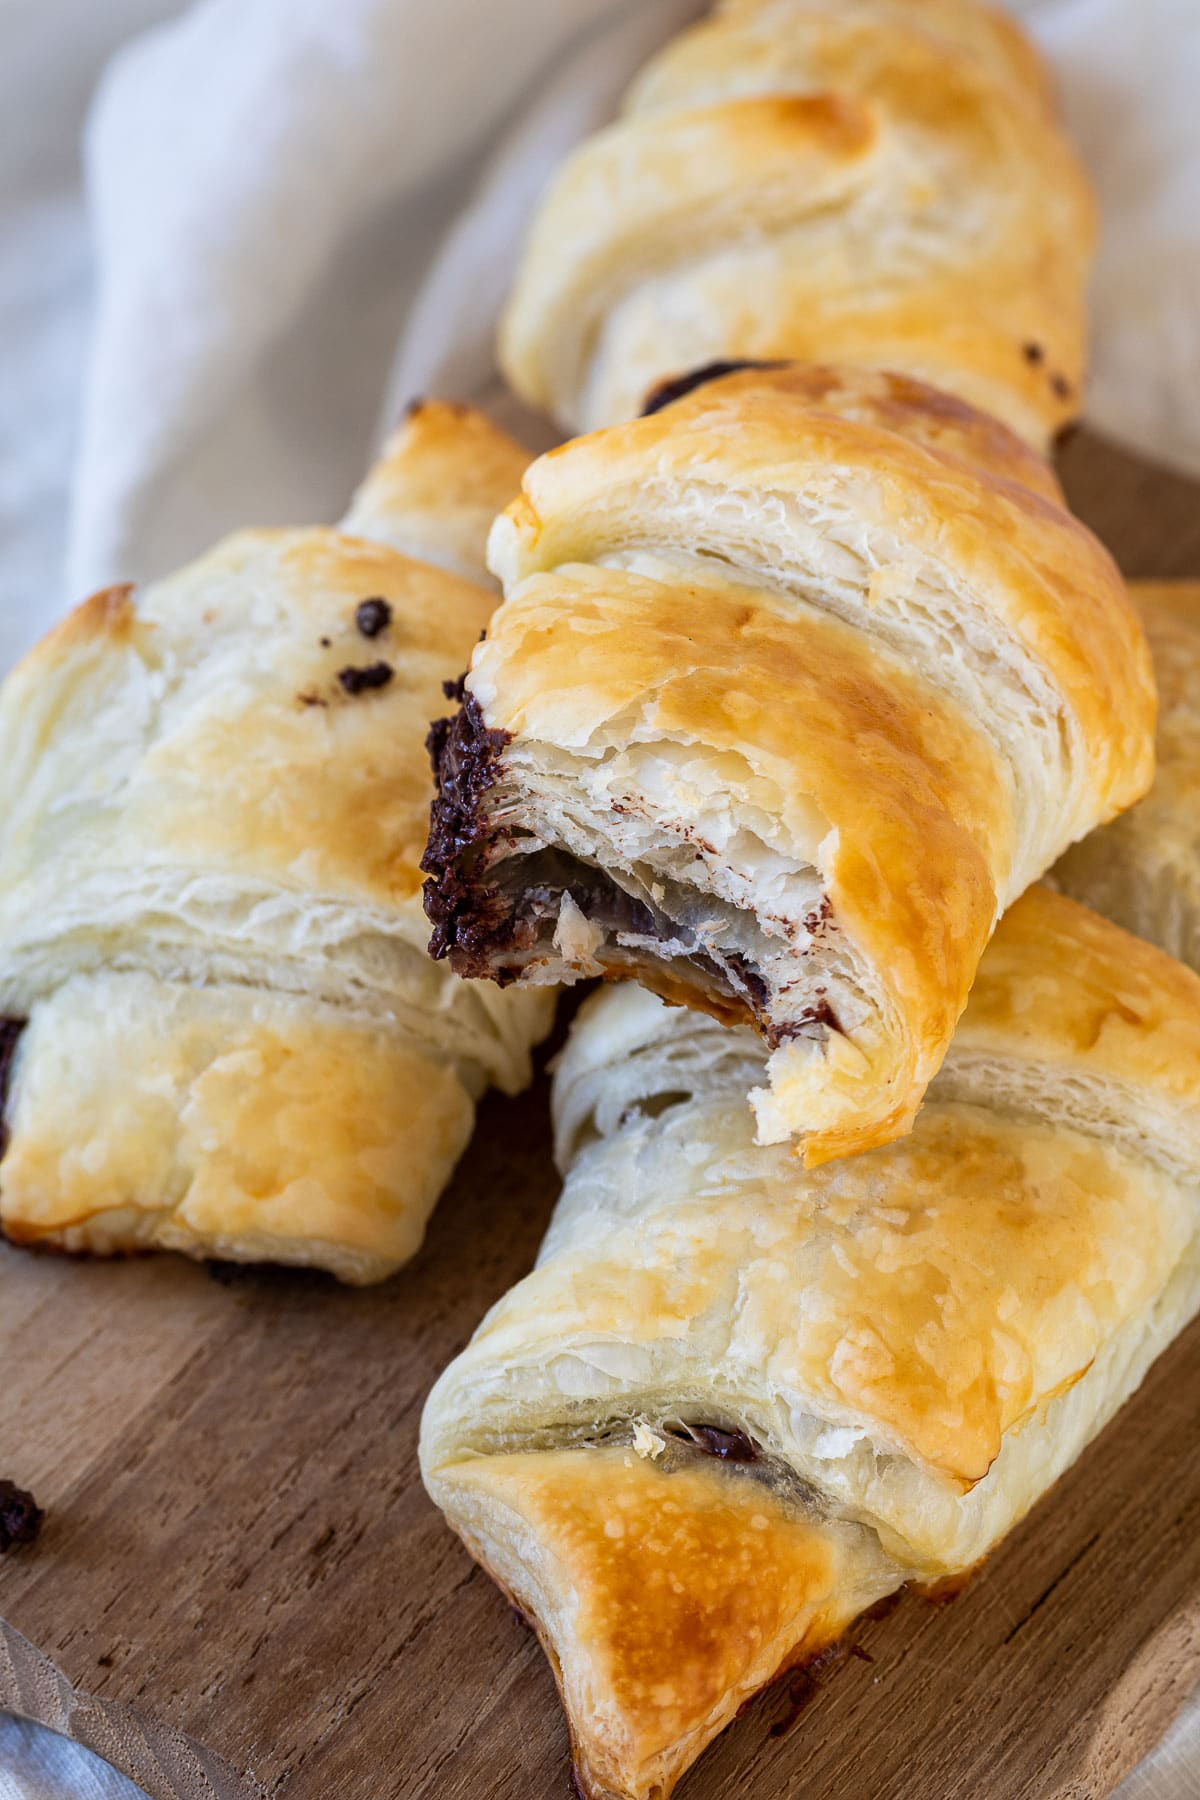 Close up of the vegan chocolate croissants with pastry dough